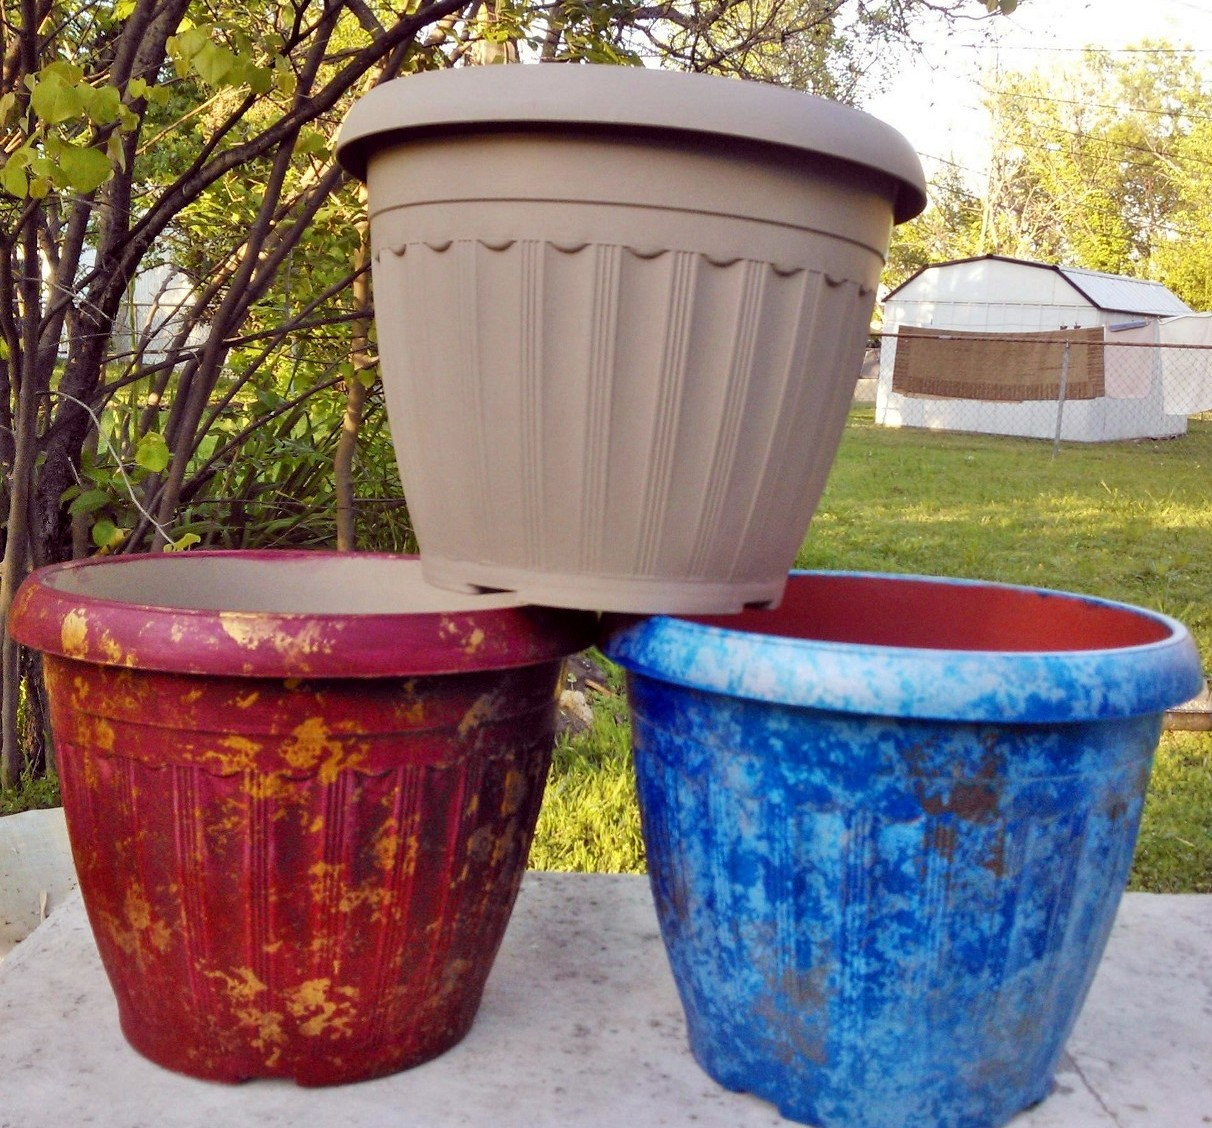 ll's life and times: international painted plastic flower pots